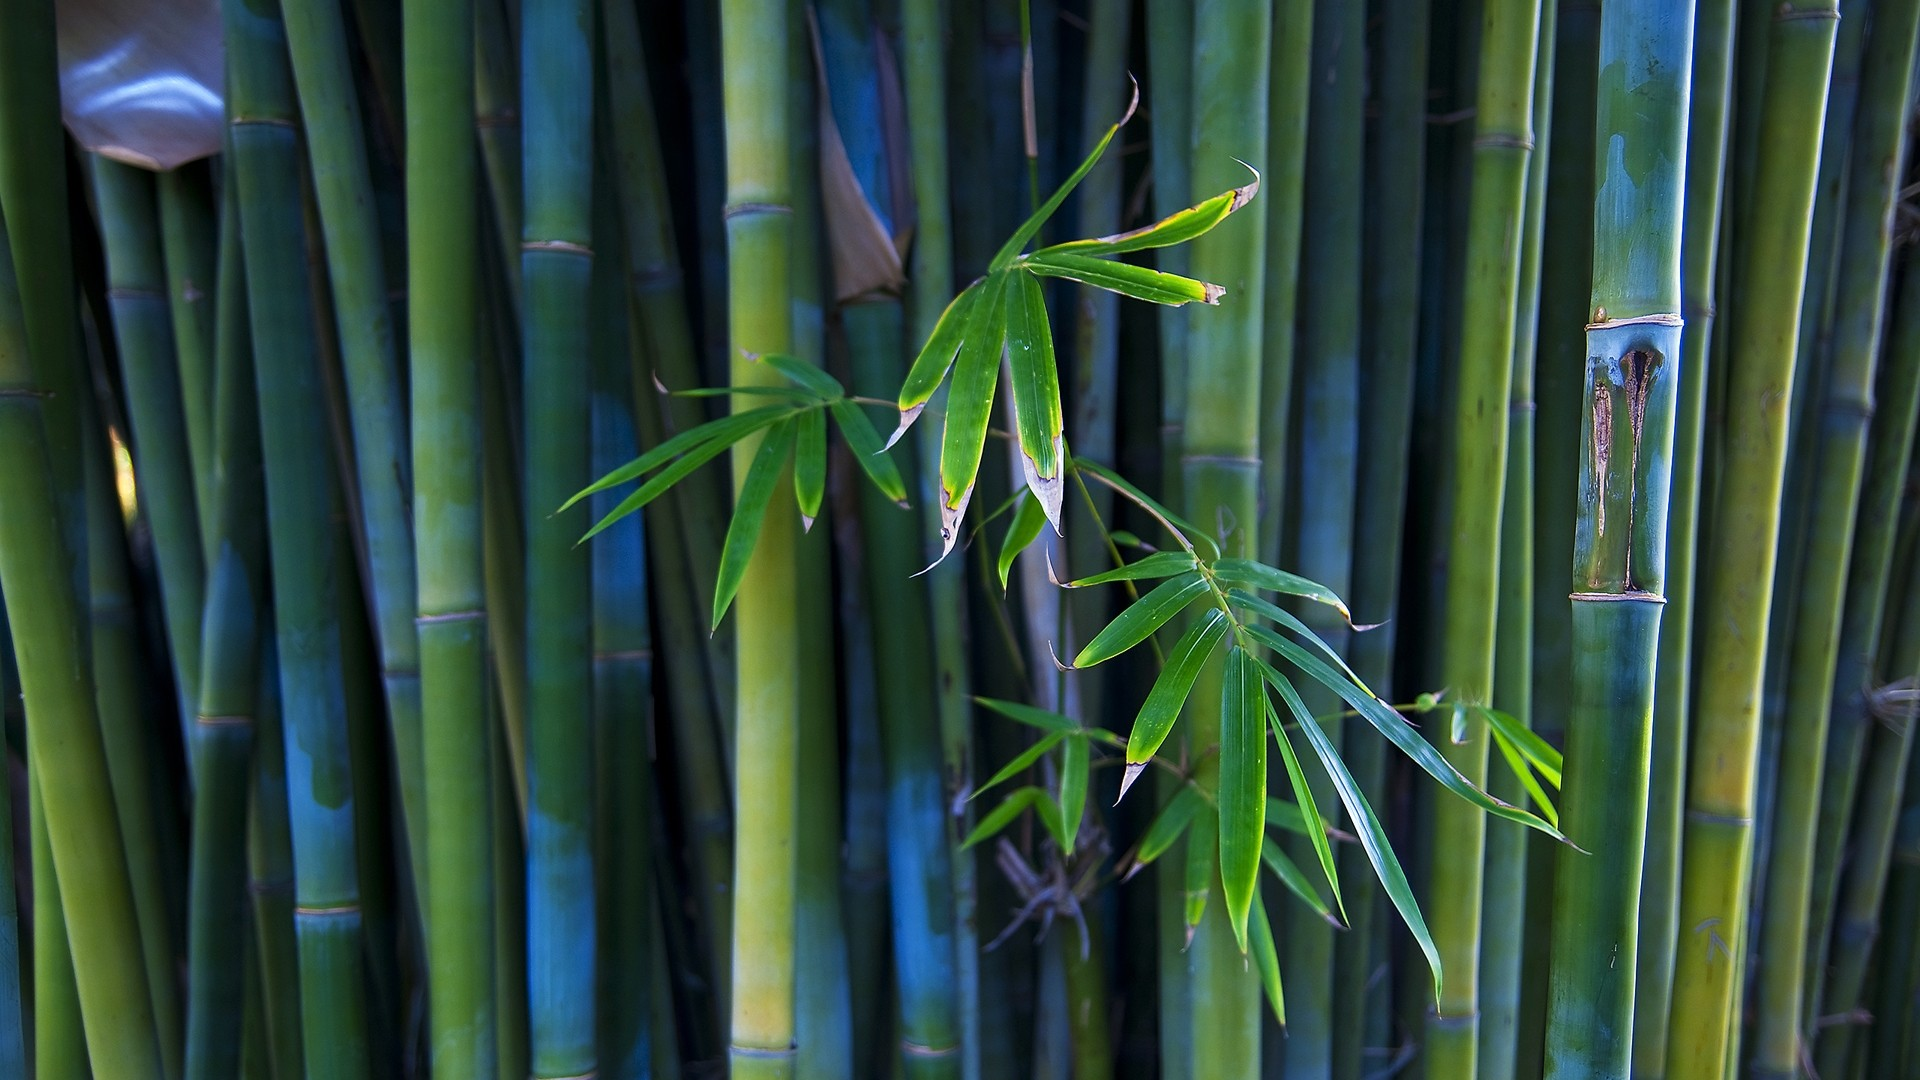 Bamboo Free Wallpaper and Background